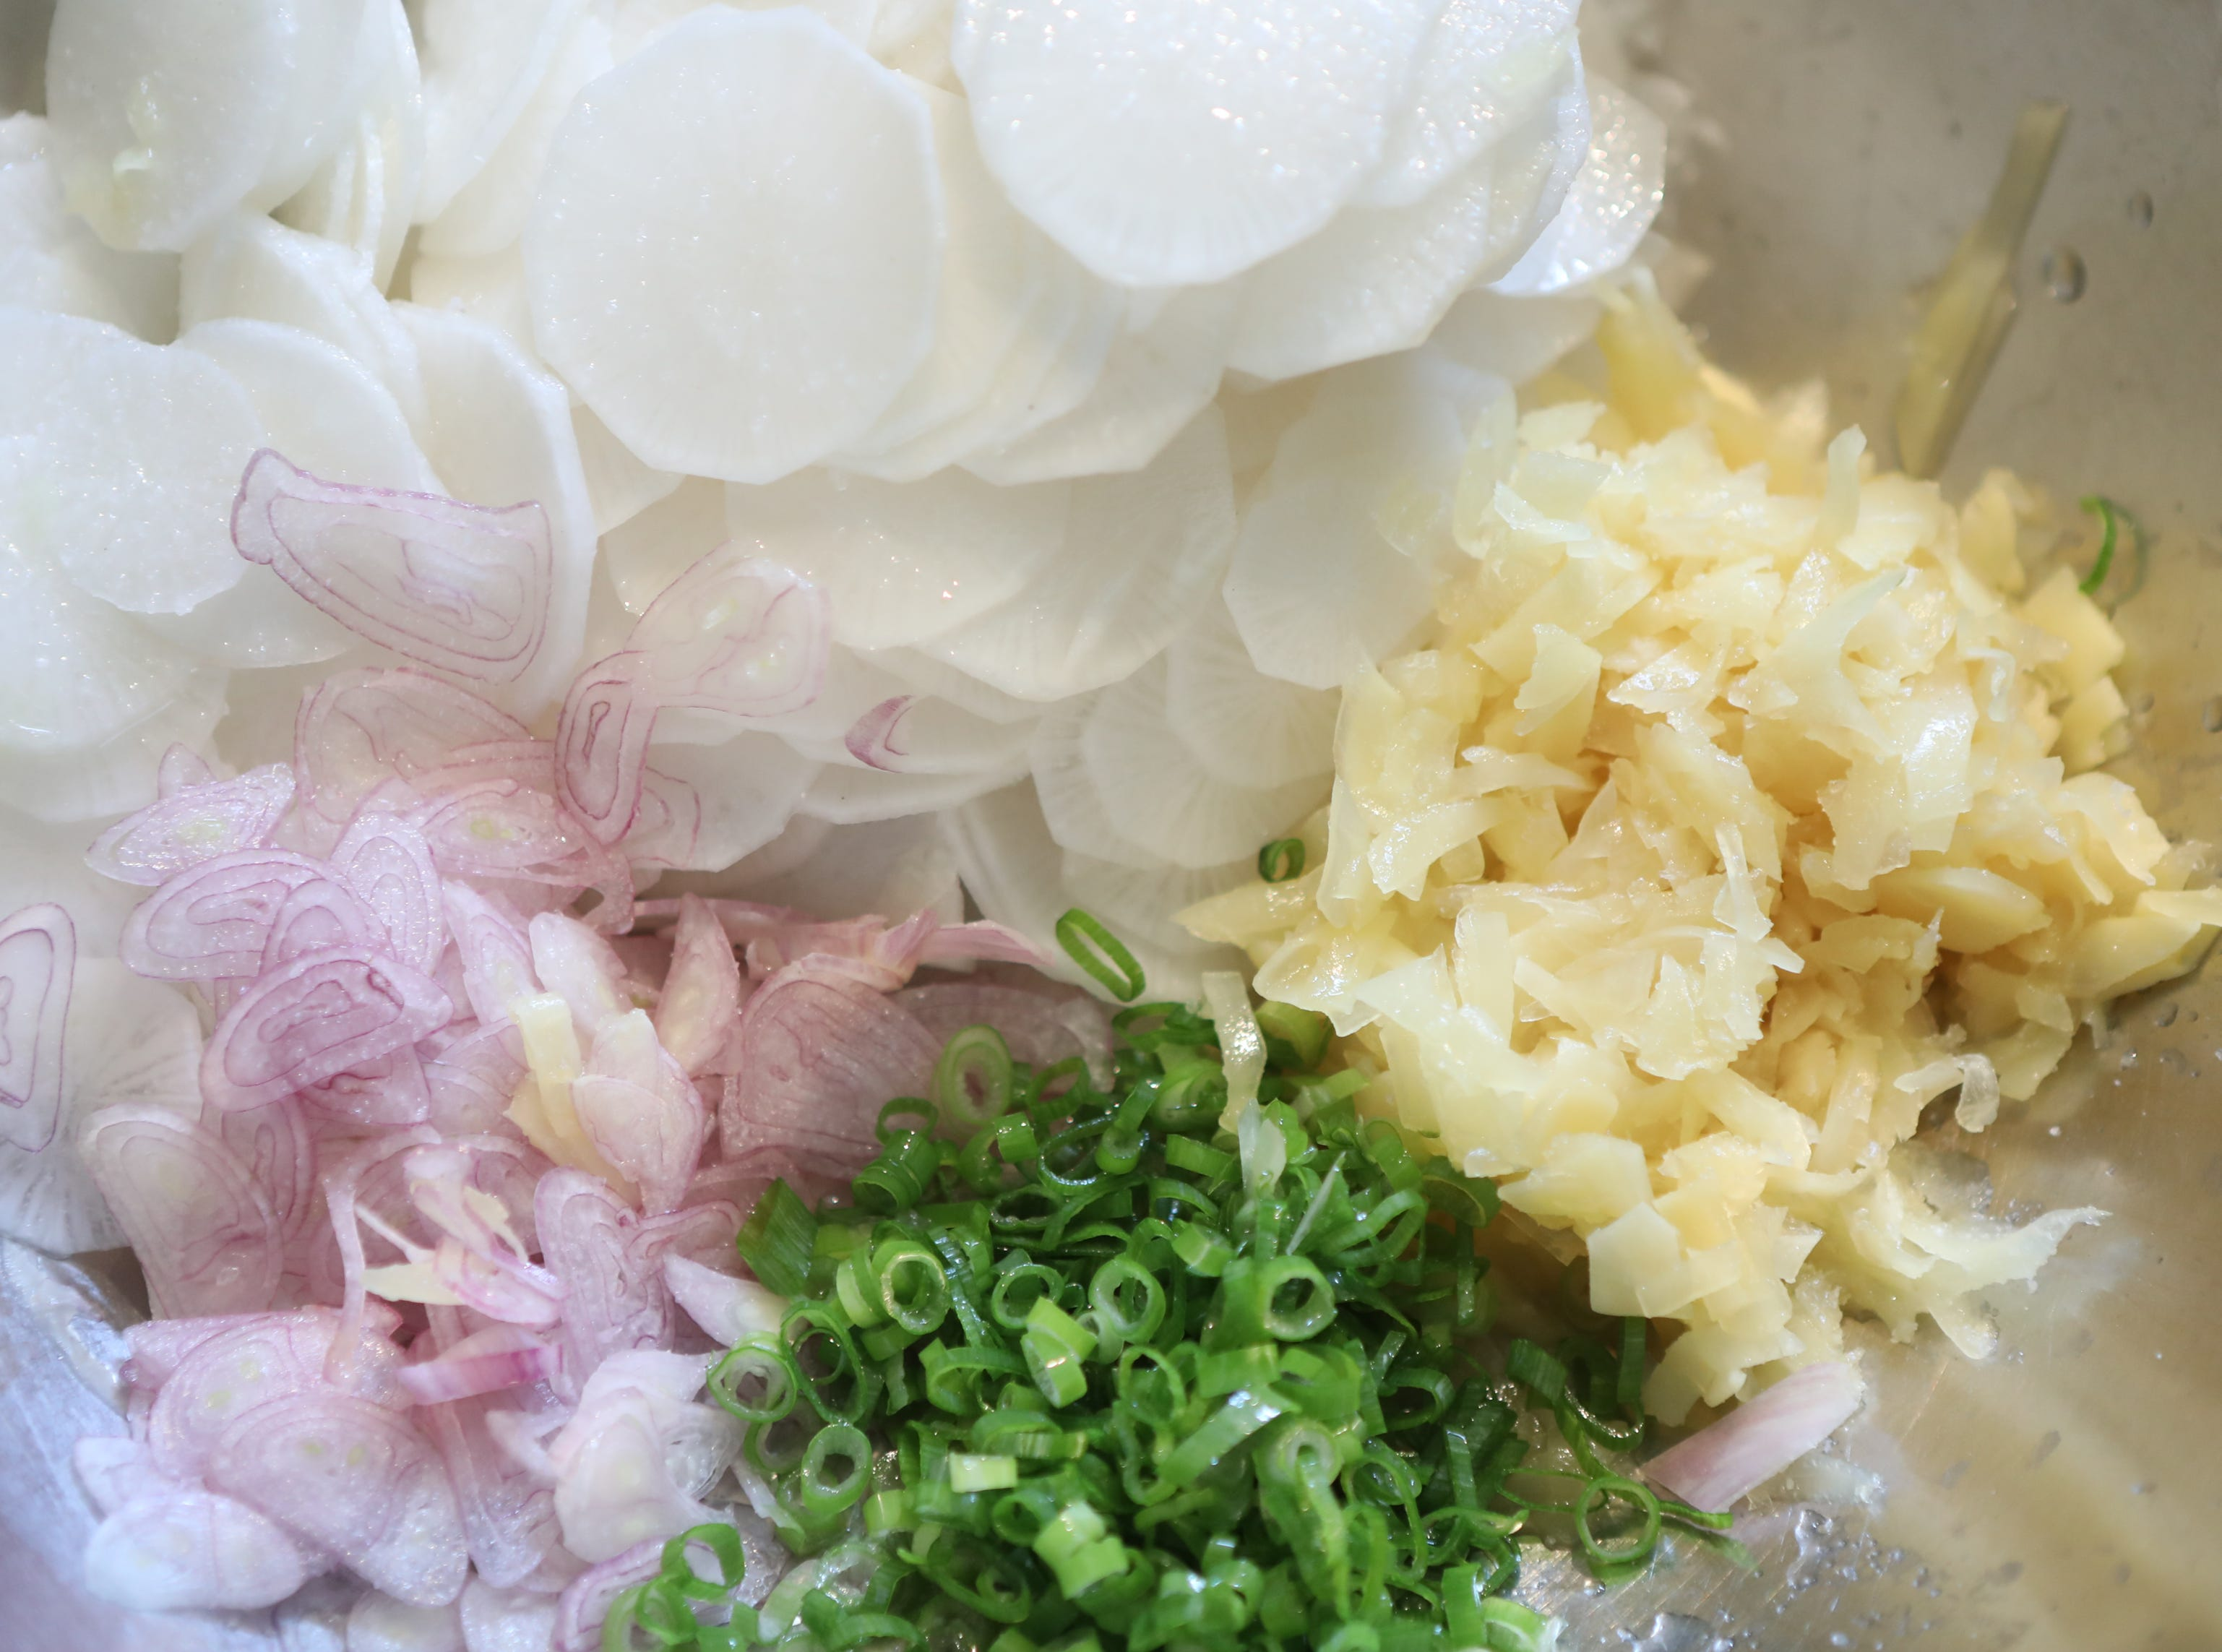 Cut, daikon radish, pickled ginger, scallion and shallots are ready to be added to the side of an Asian fusion entree .